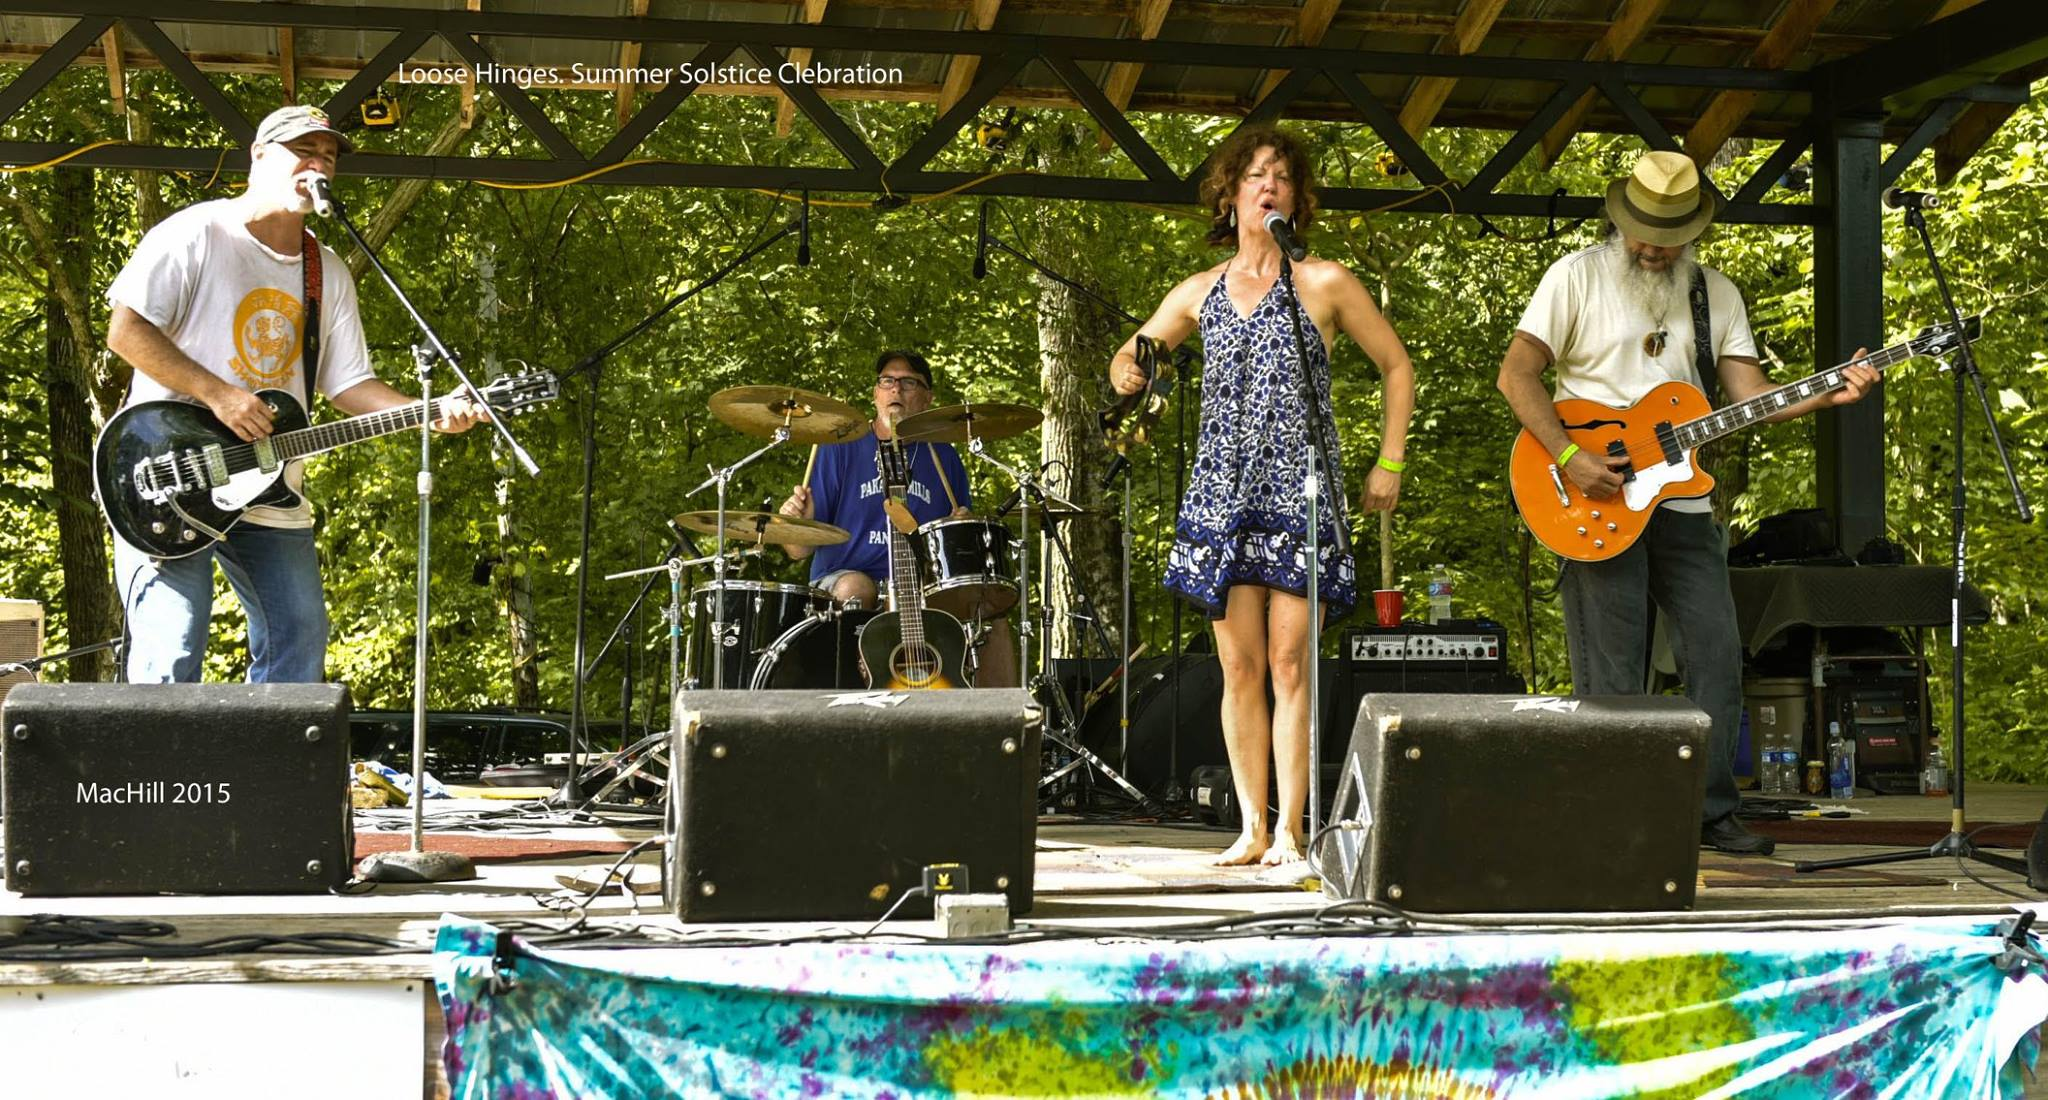 loose hinges, kris houser, music festival, tennesee, barefoot farmer